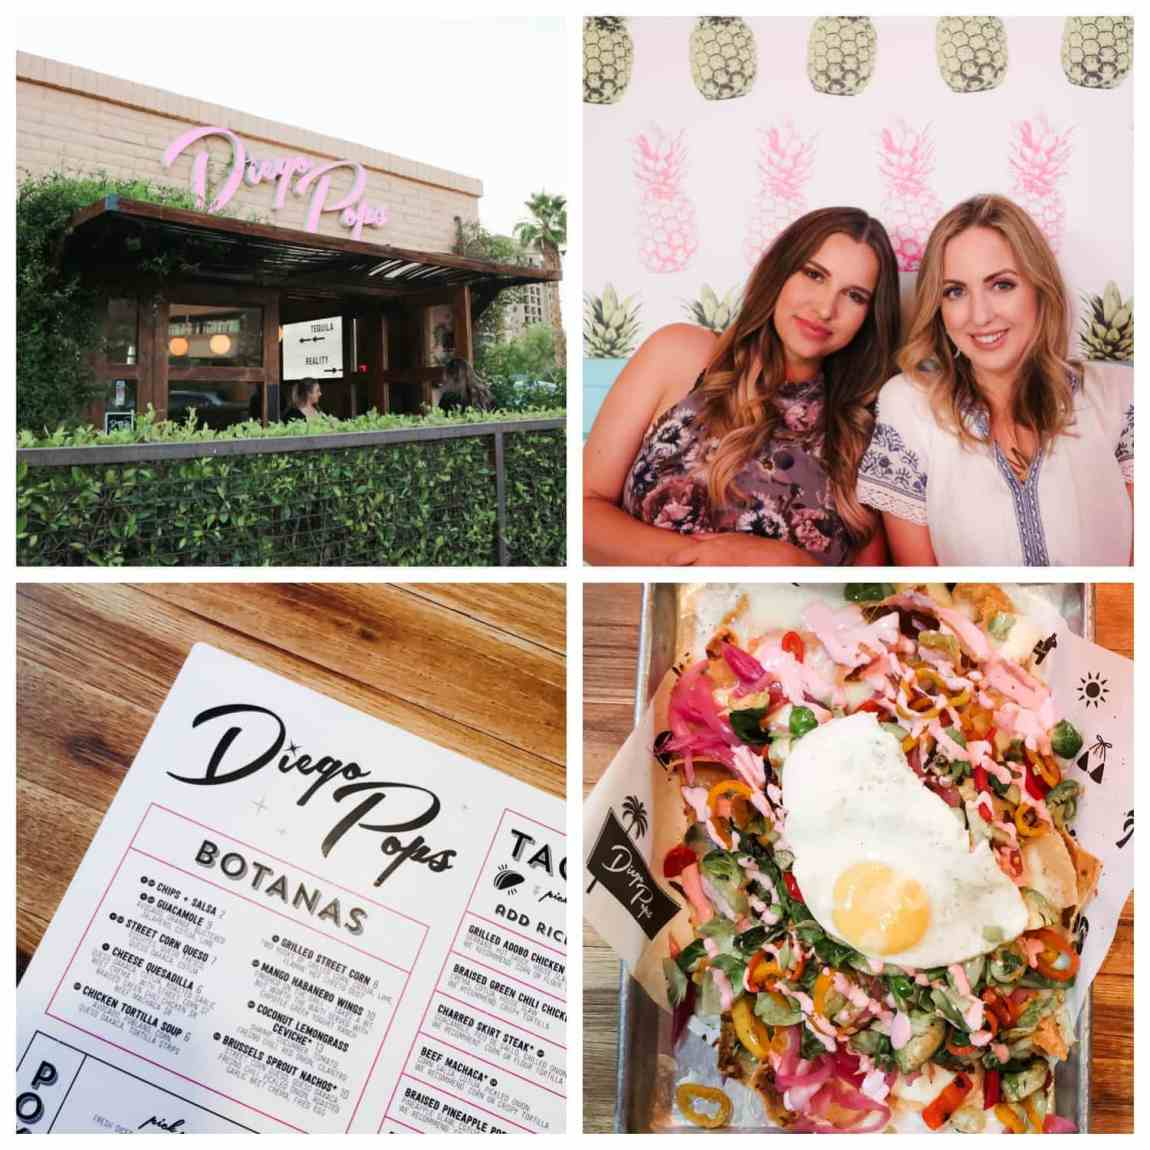 Diego Pops in Old Town Scottsdale - as seen in Scottsdale weekend girls trip travel guide by Meg O. on the Go